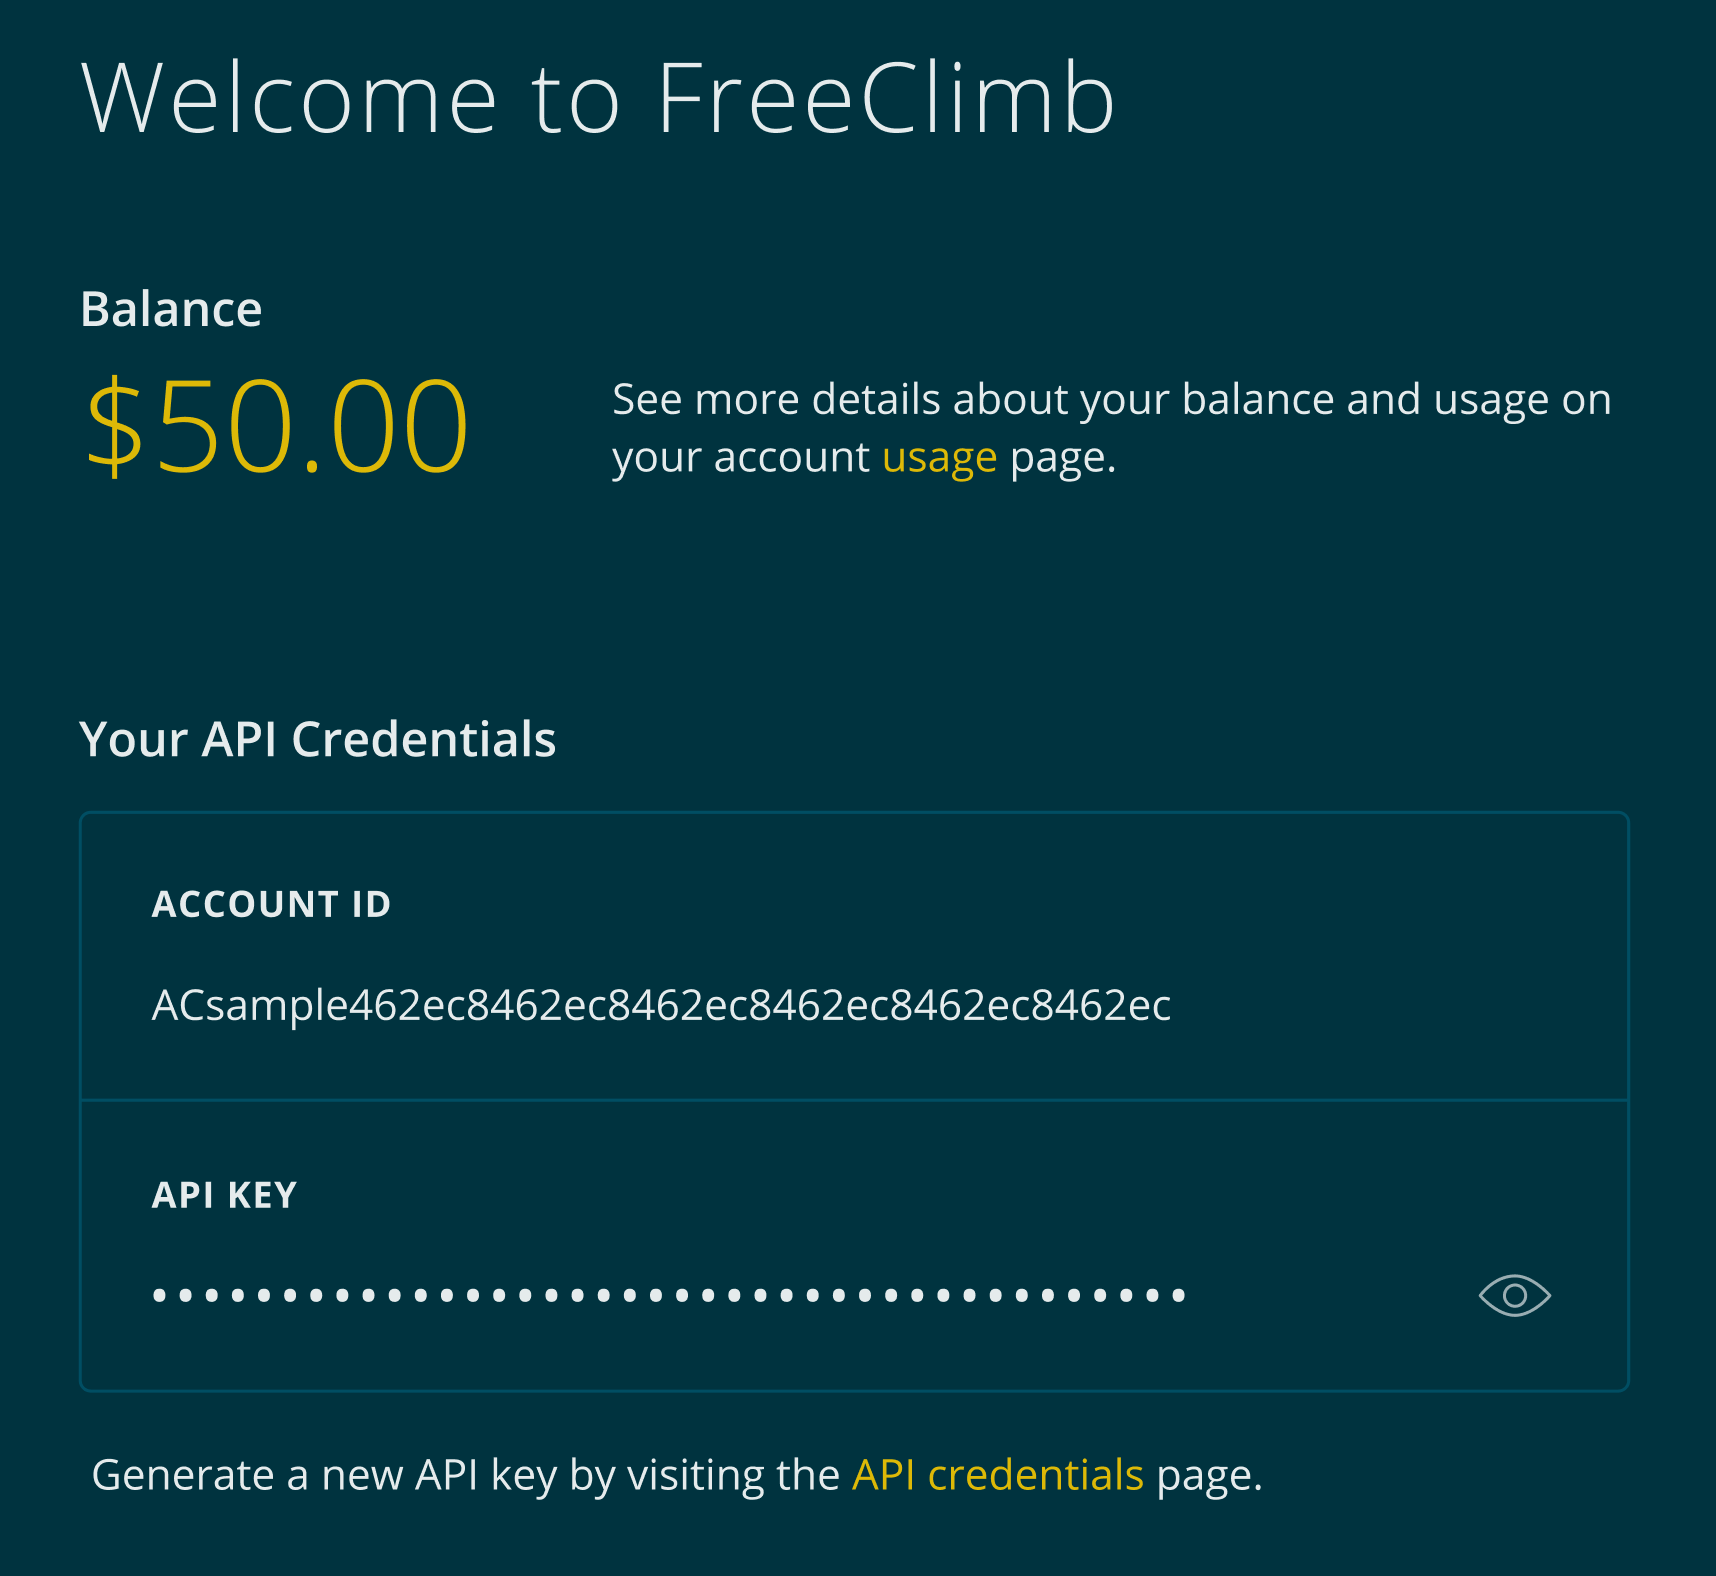 Your Dashboard homepage contains your account ID and most recently created API key